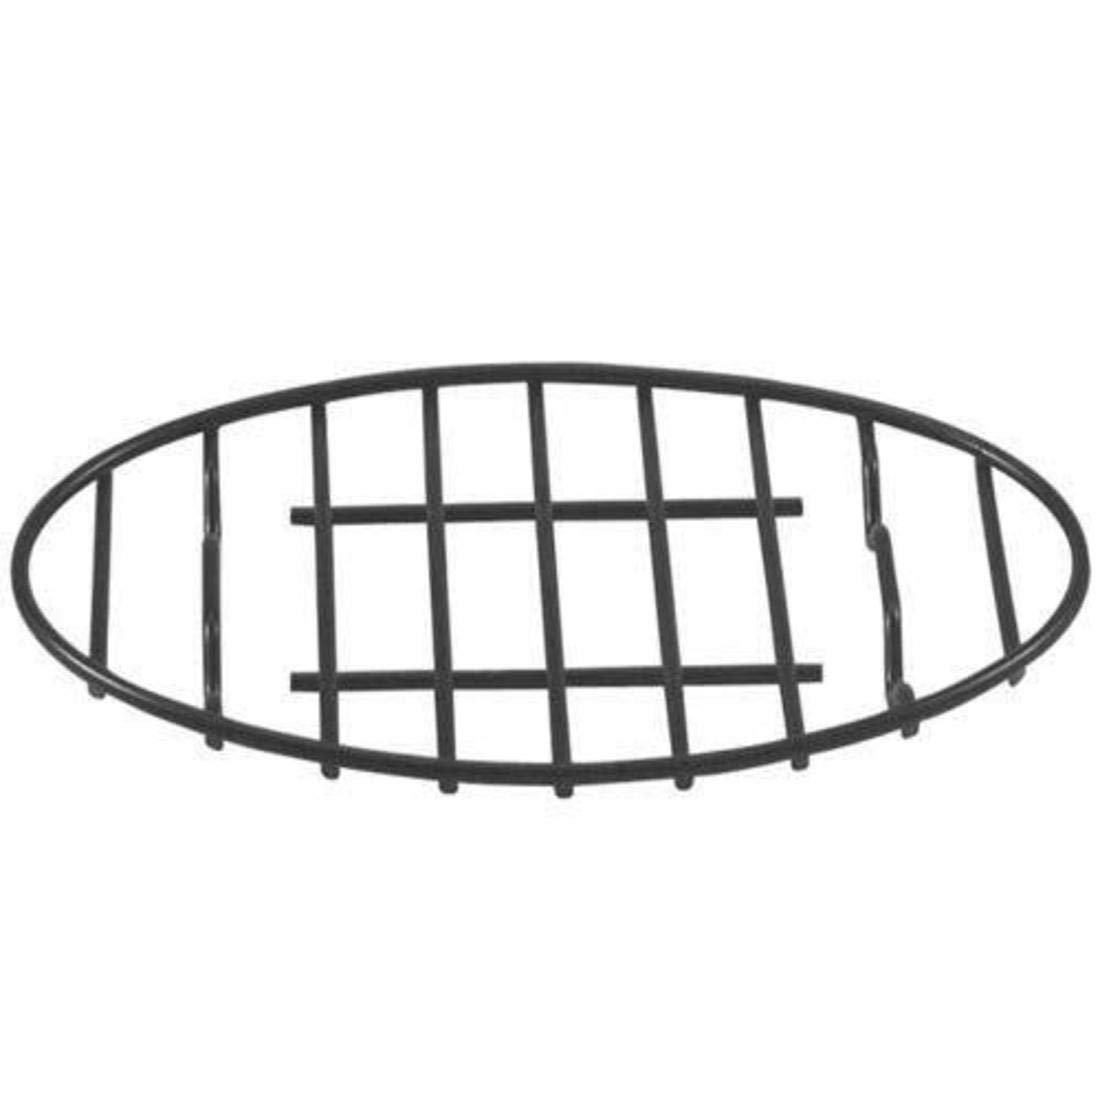 GOURMEX Oval Roasting Rack with Integrated Feet, Black, Non-Stick Whitford Coating, PTFE-Free | Oven and Dishwasher Safe | Ideal for Cooking, Roasting, Drying, Grilling (6x9'') by GOURMEX